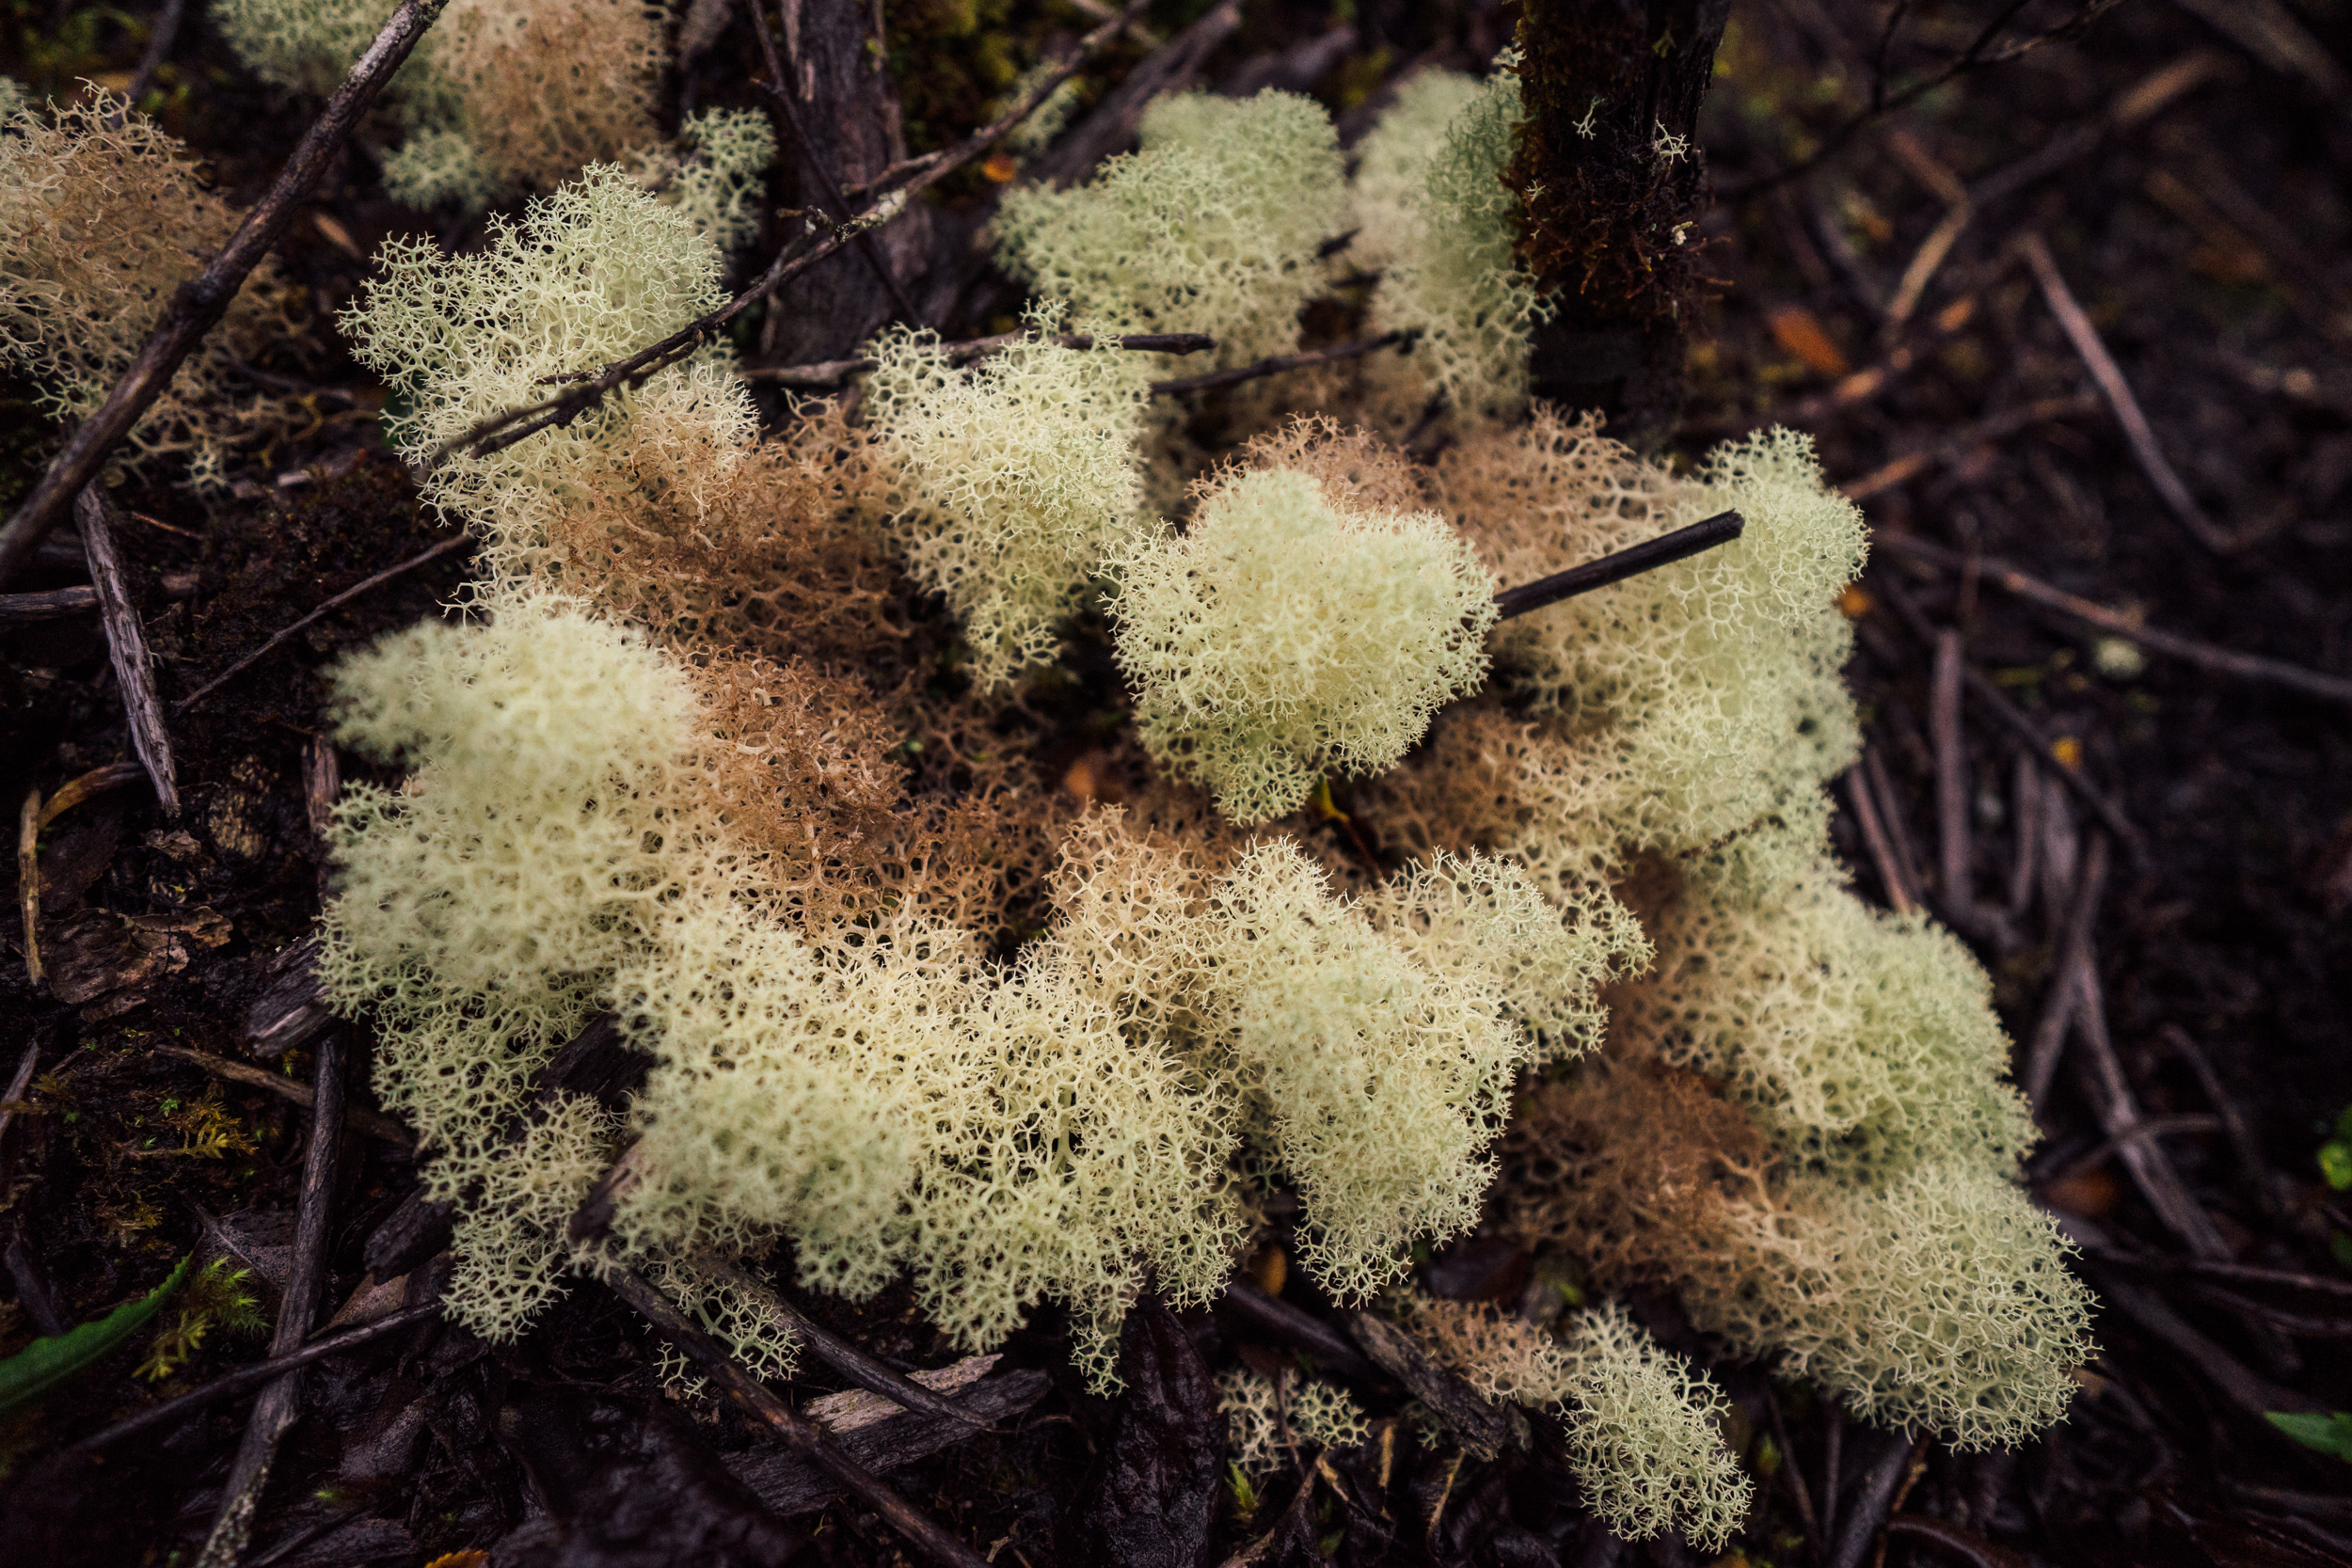 Some of the most incredible lichens